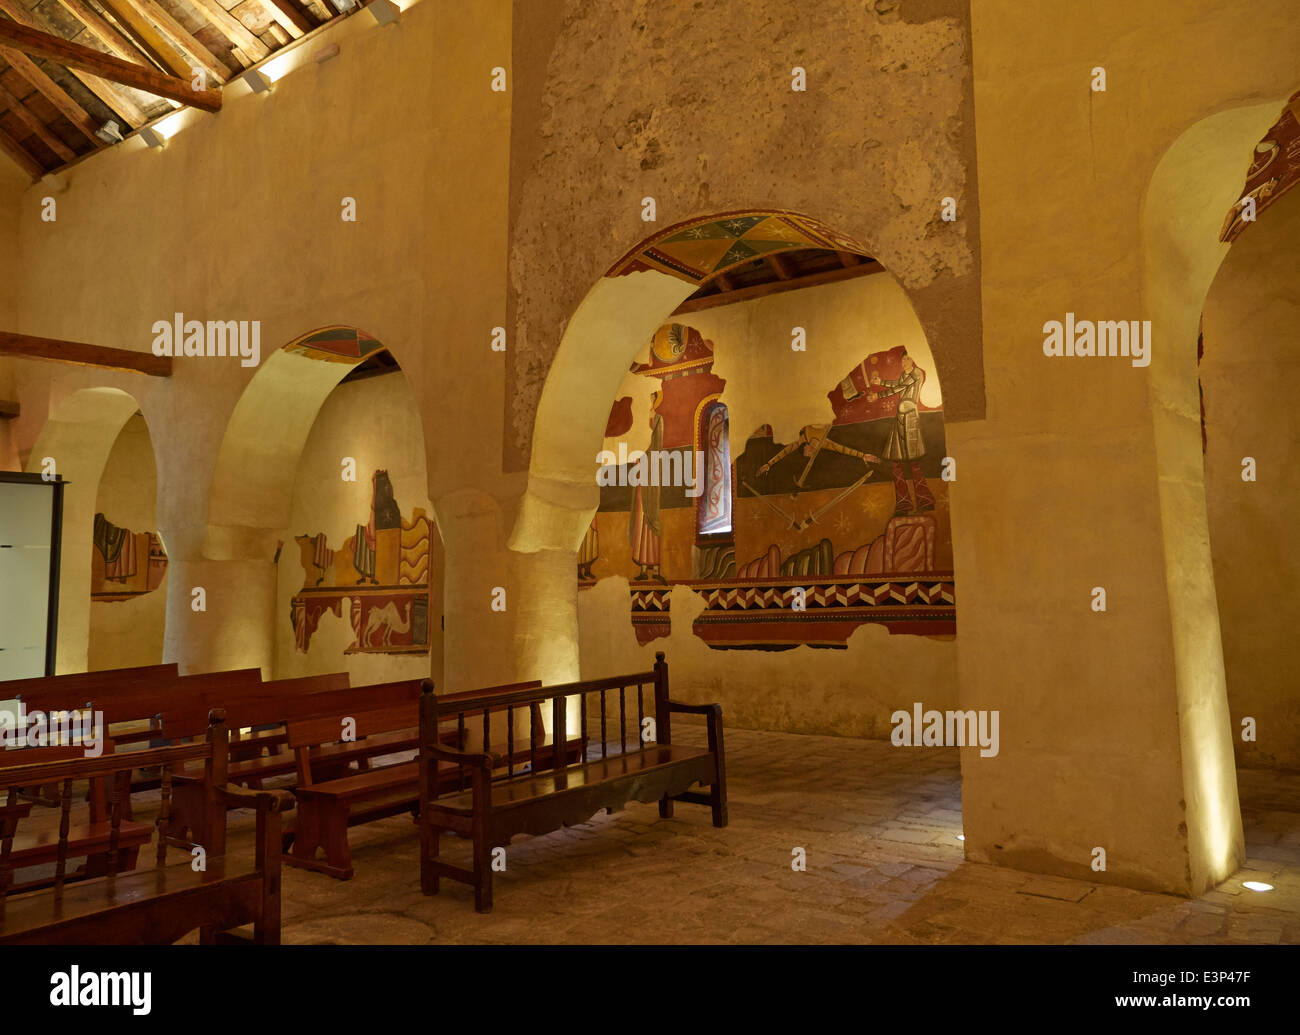 Church of Saint Joan de Boi in the Vall de Boi, Spain. Interior wall paintings. - Stock Image